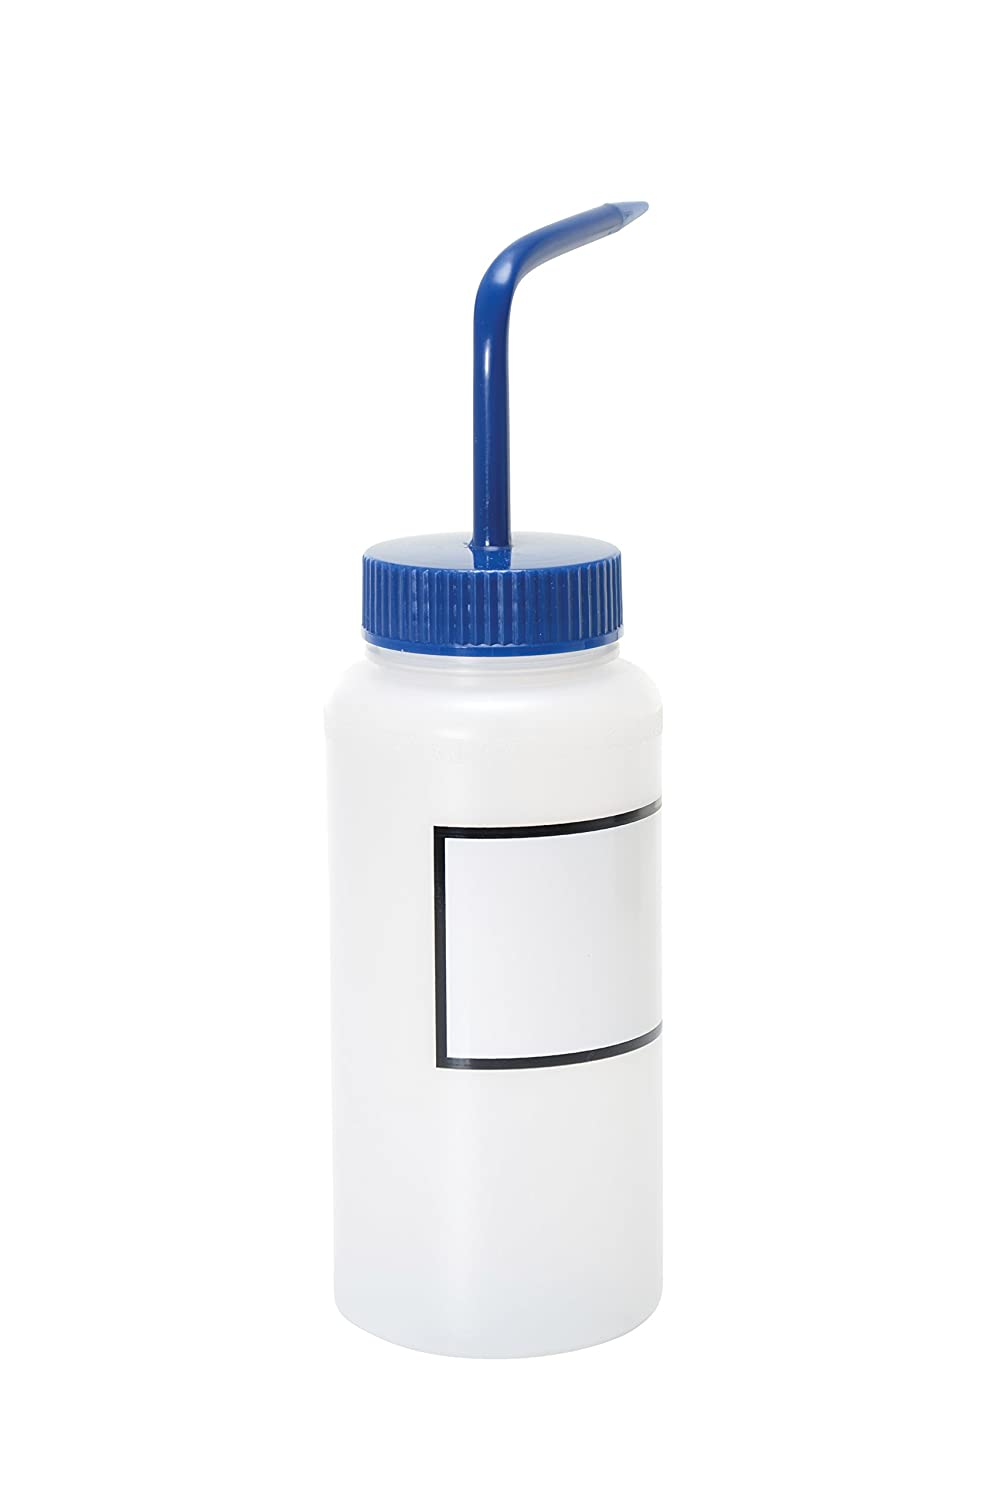 Vestil BTL-WW-16B-LBL Wide Mouth Low Density Polyethylene (LDPE) Round Squeeze Wash Bottle with Label and Blue Cap, 16 oz Capacity, Translucent